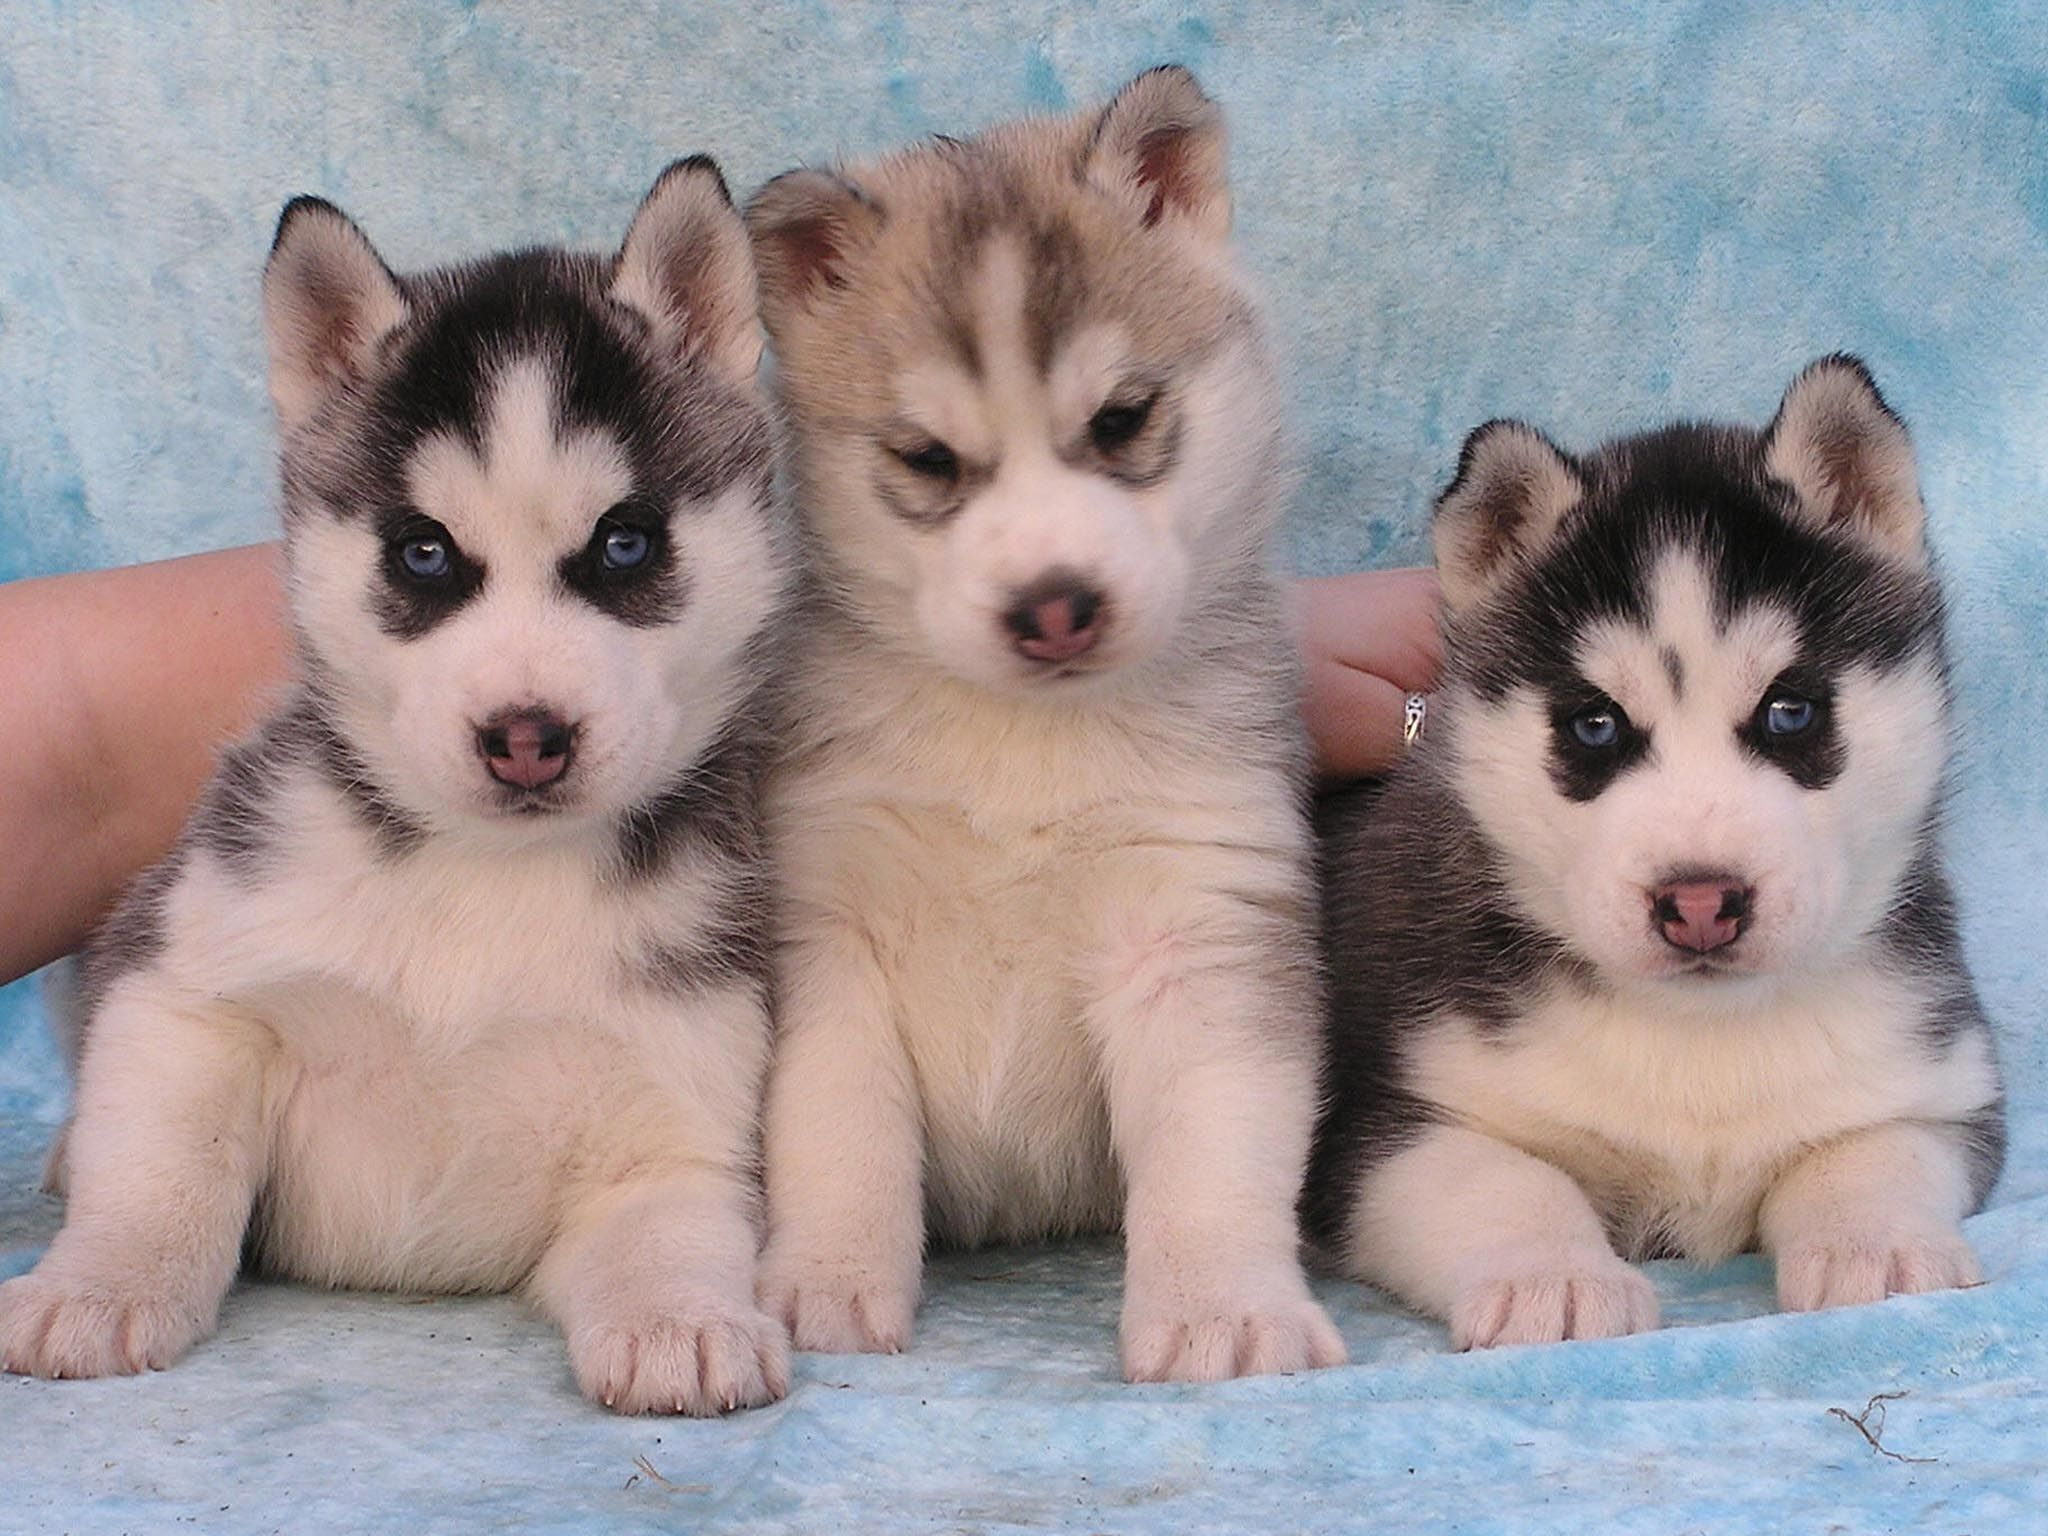 Free Siberian Husky Puppies Wallpaper For Your Desktop Phone We Have The Best Cute Animal Wallpapers P Cute Husky Puppies Siberian Husky Dog Beautiful Dogs